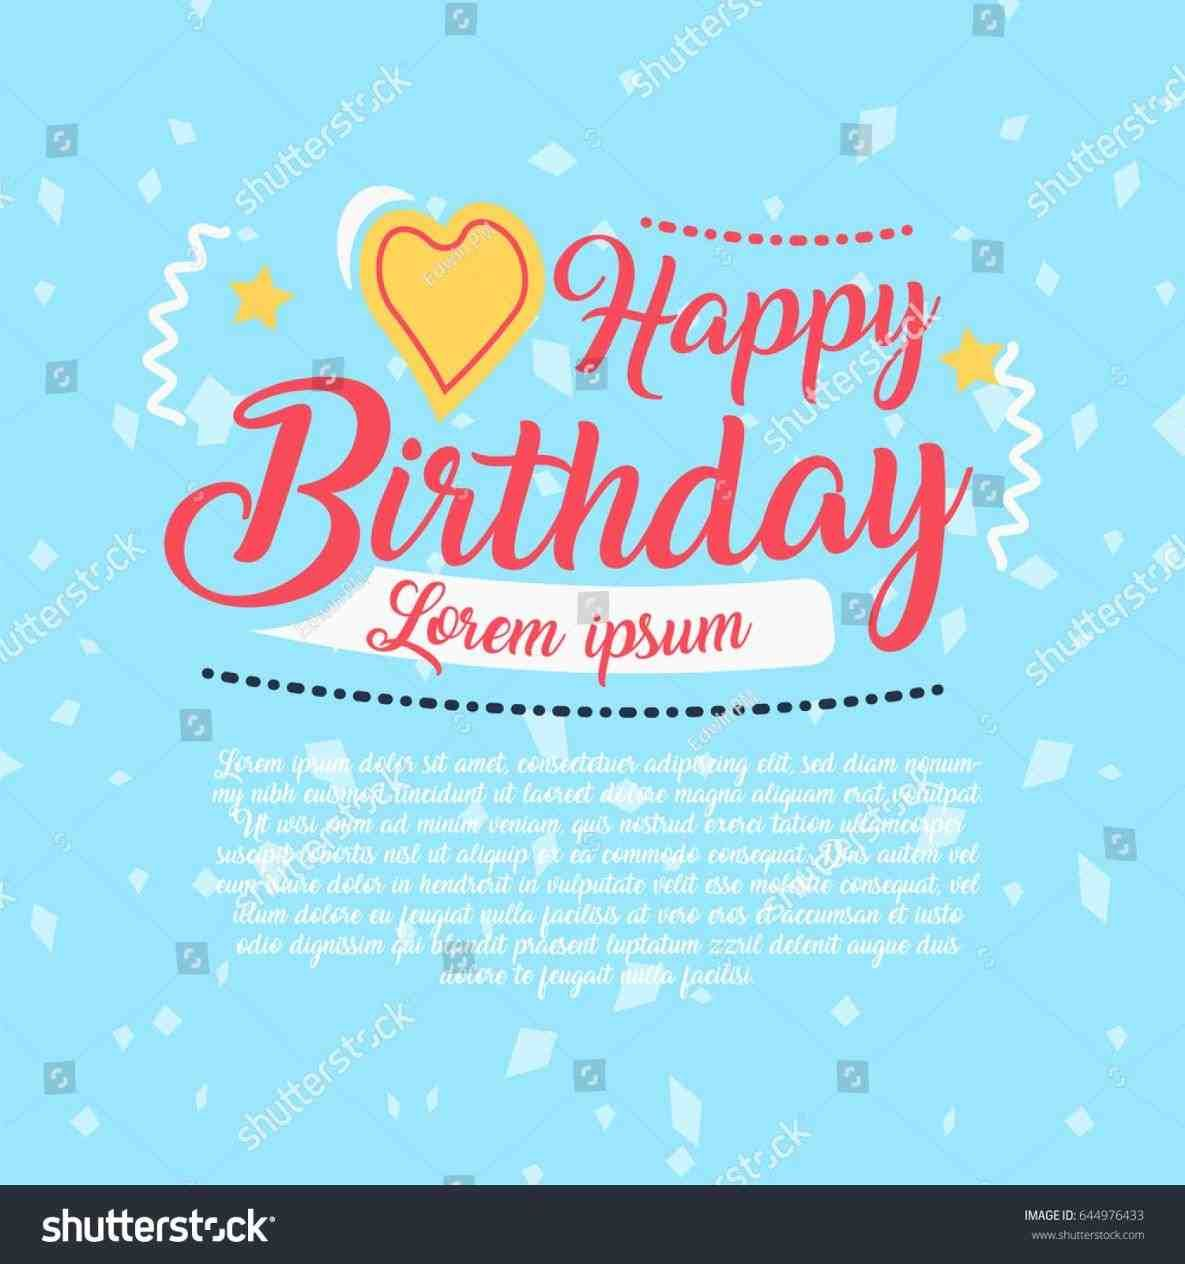 Happy birthday wishes quotes with cards happy birthday wishes happy birthday wishes quotes with cards happy birthday wishes images and greeting cards pictures kristyandbryce Choice Image